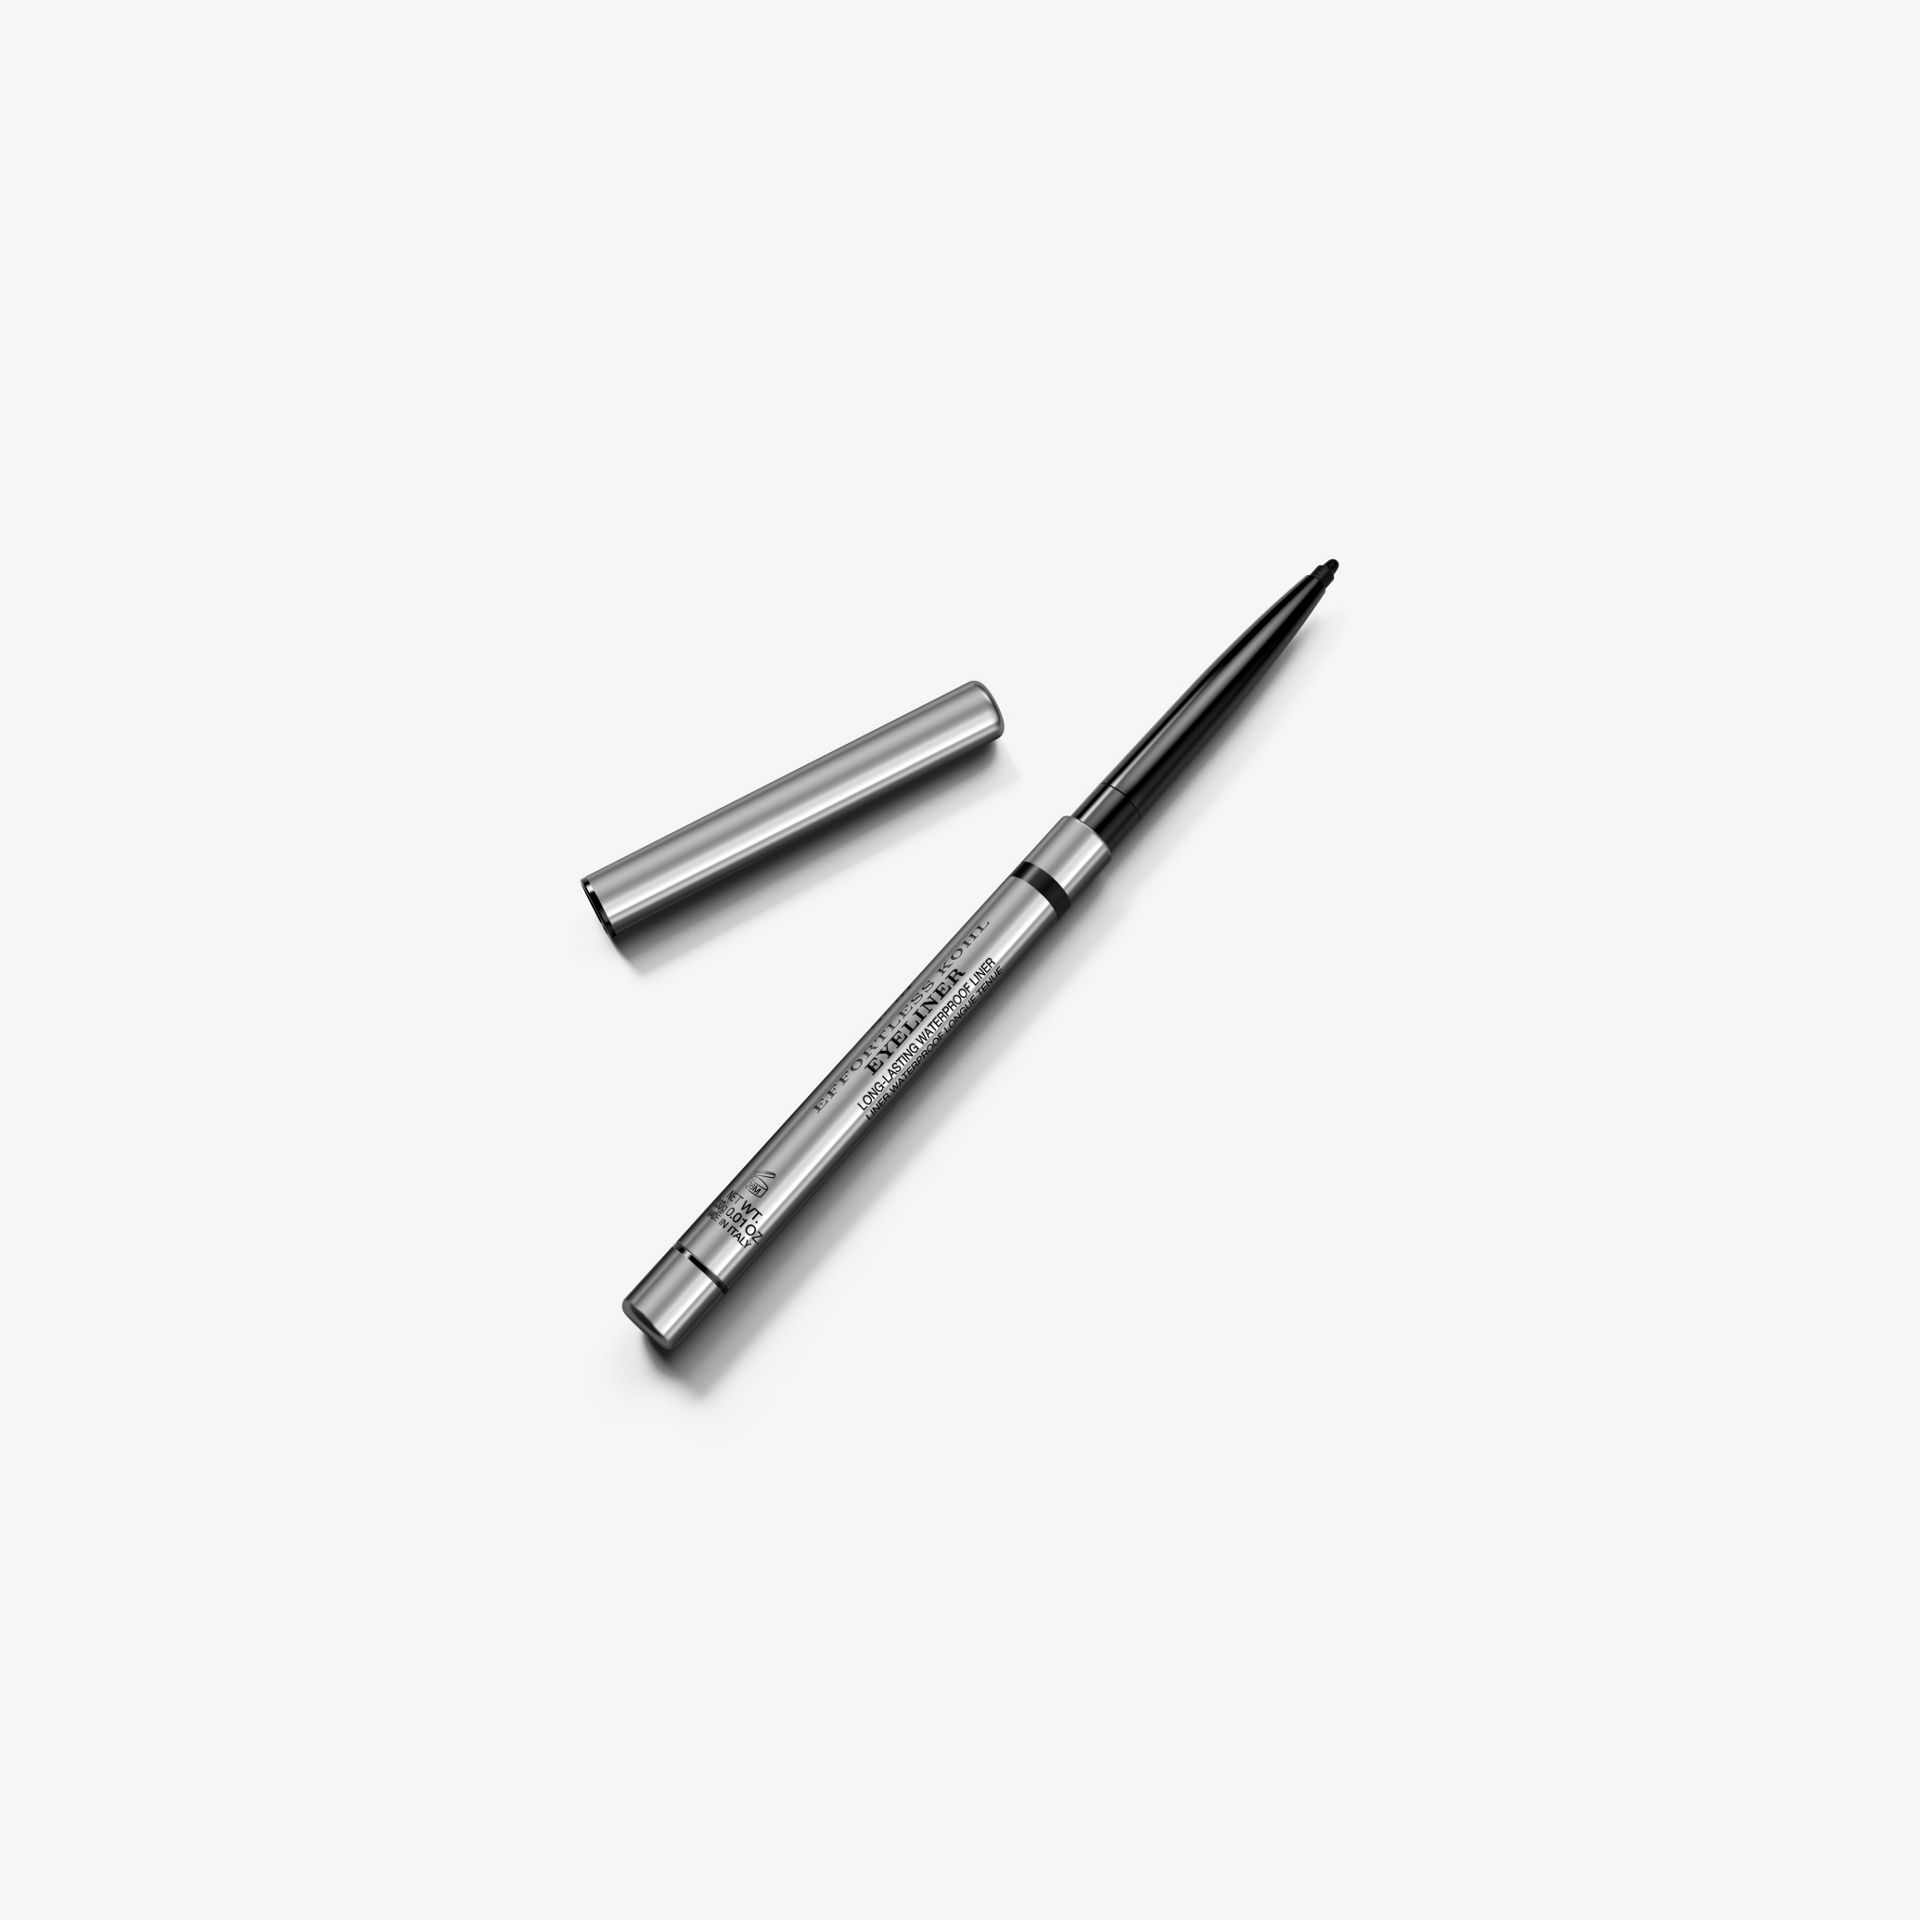 Контурный карандаш Effortless Kohl Eyeliner, Jet Black № 01 (№ 01) - Для женщин | Burberry - изображение 0